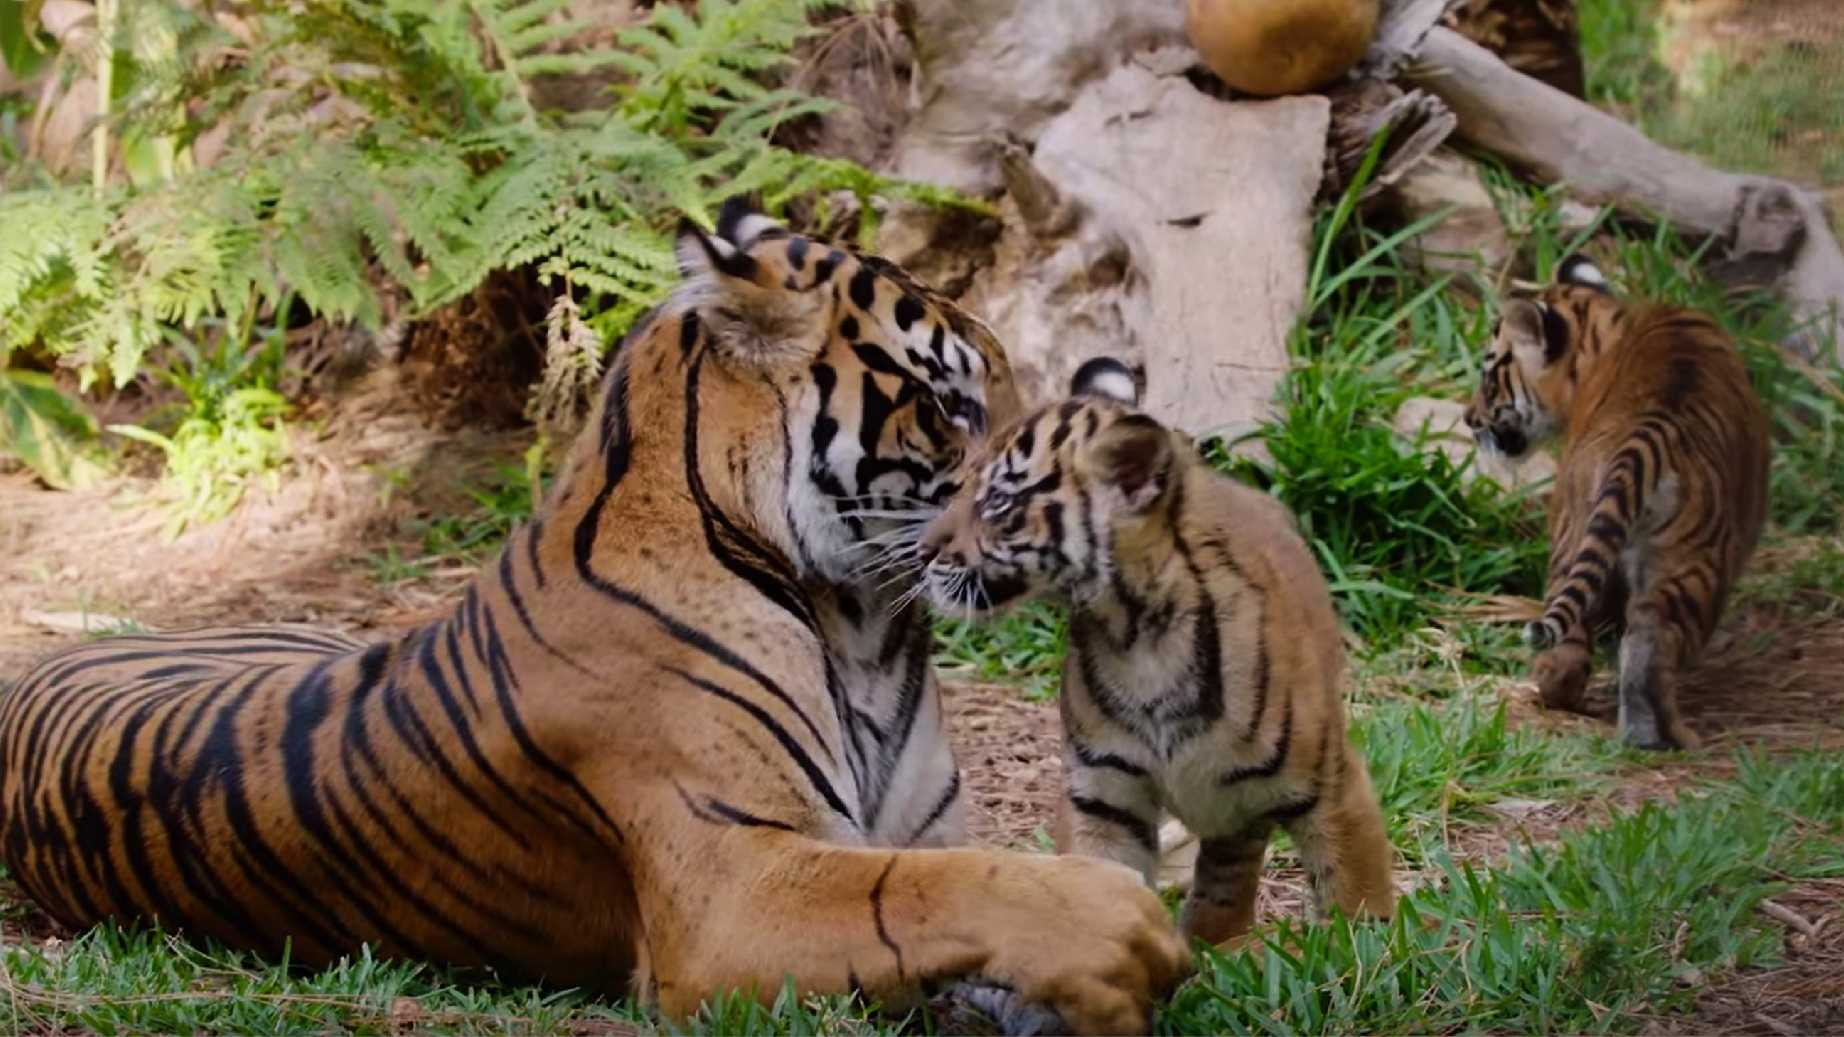 Joanne nuzzles with one of her cubs.